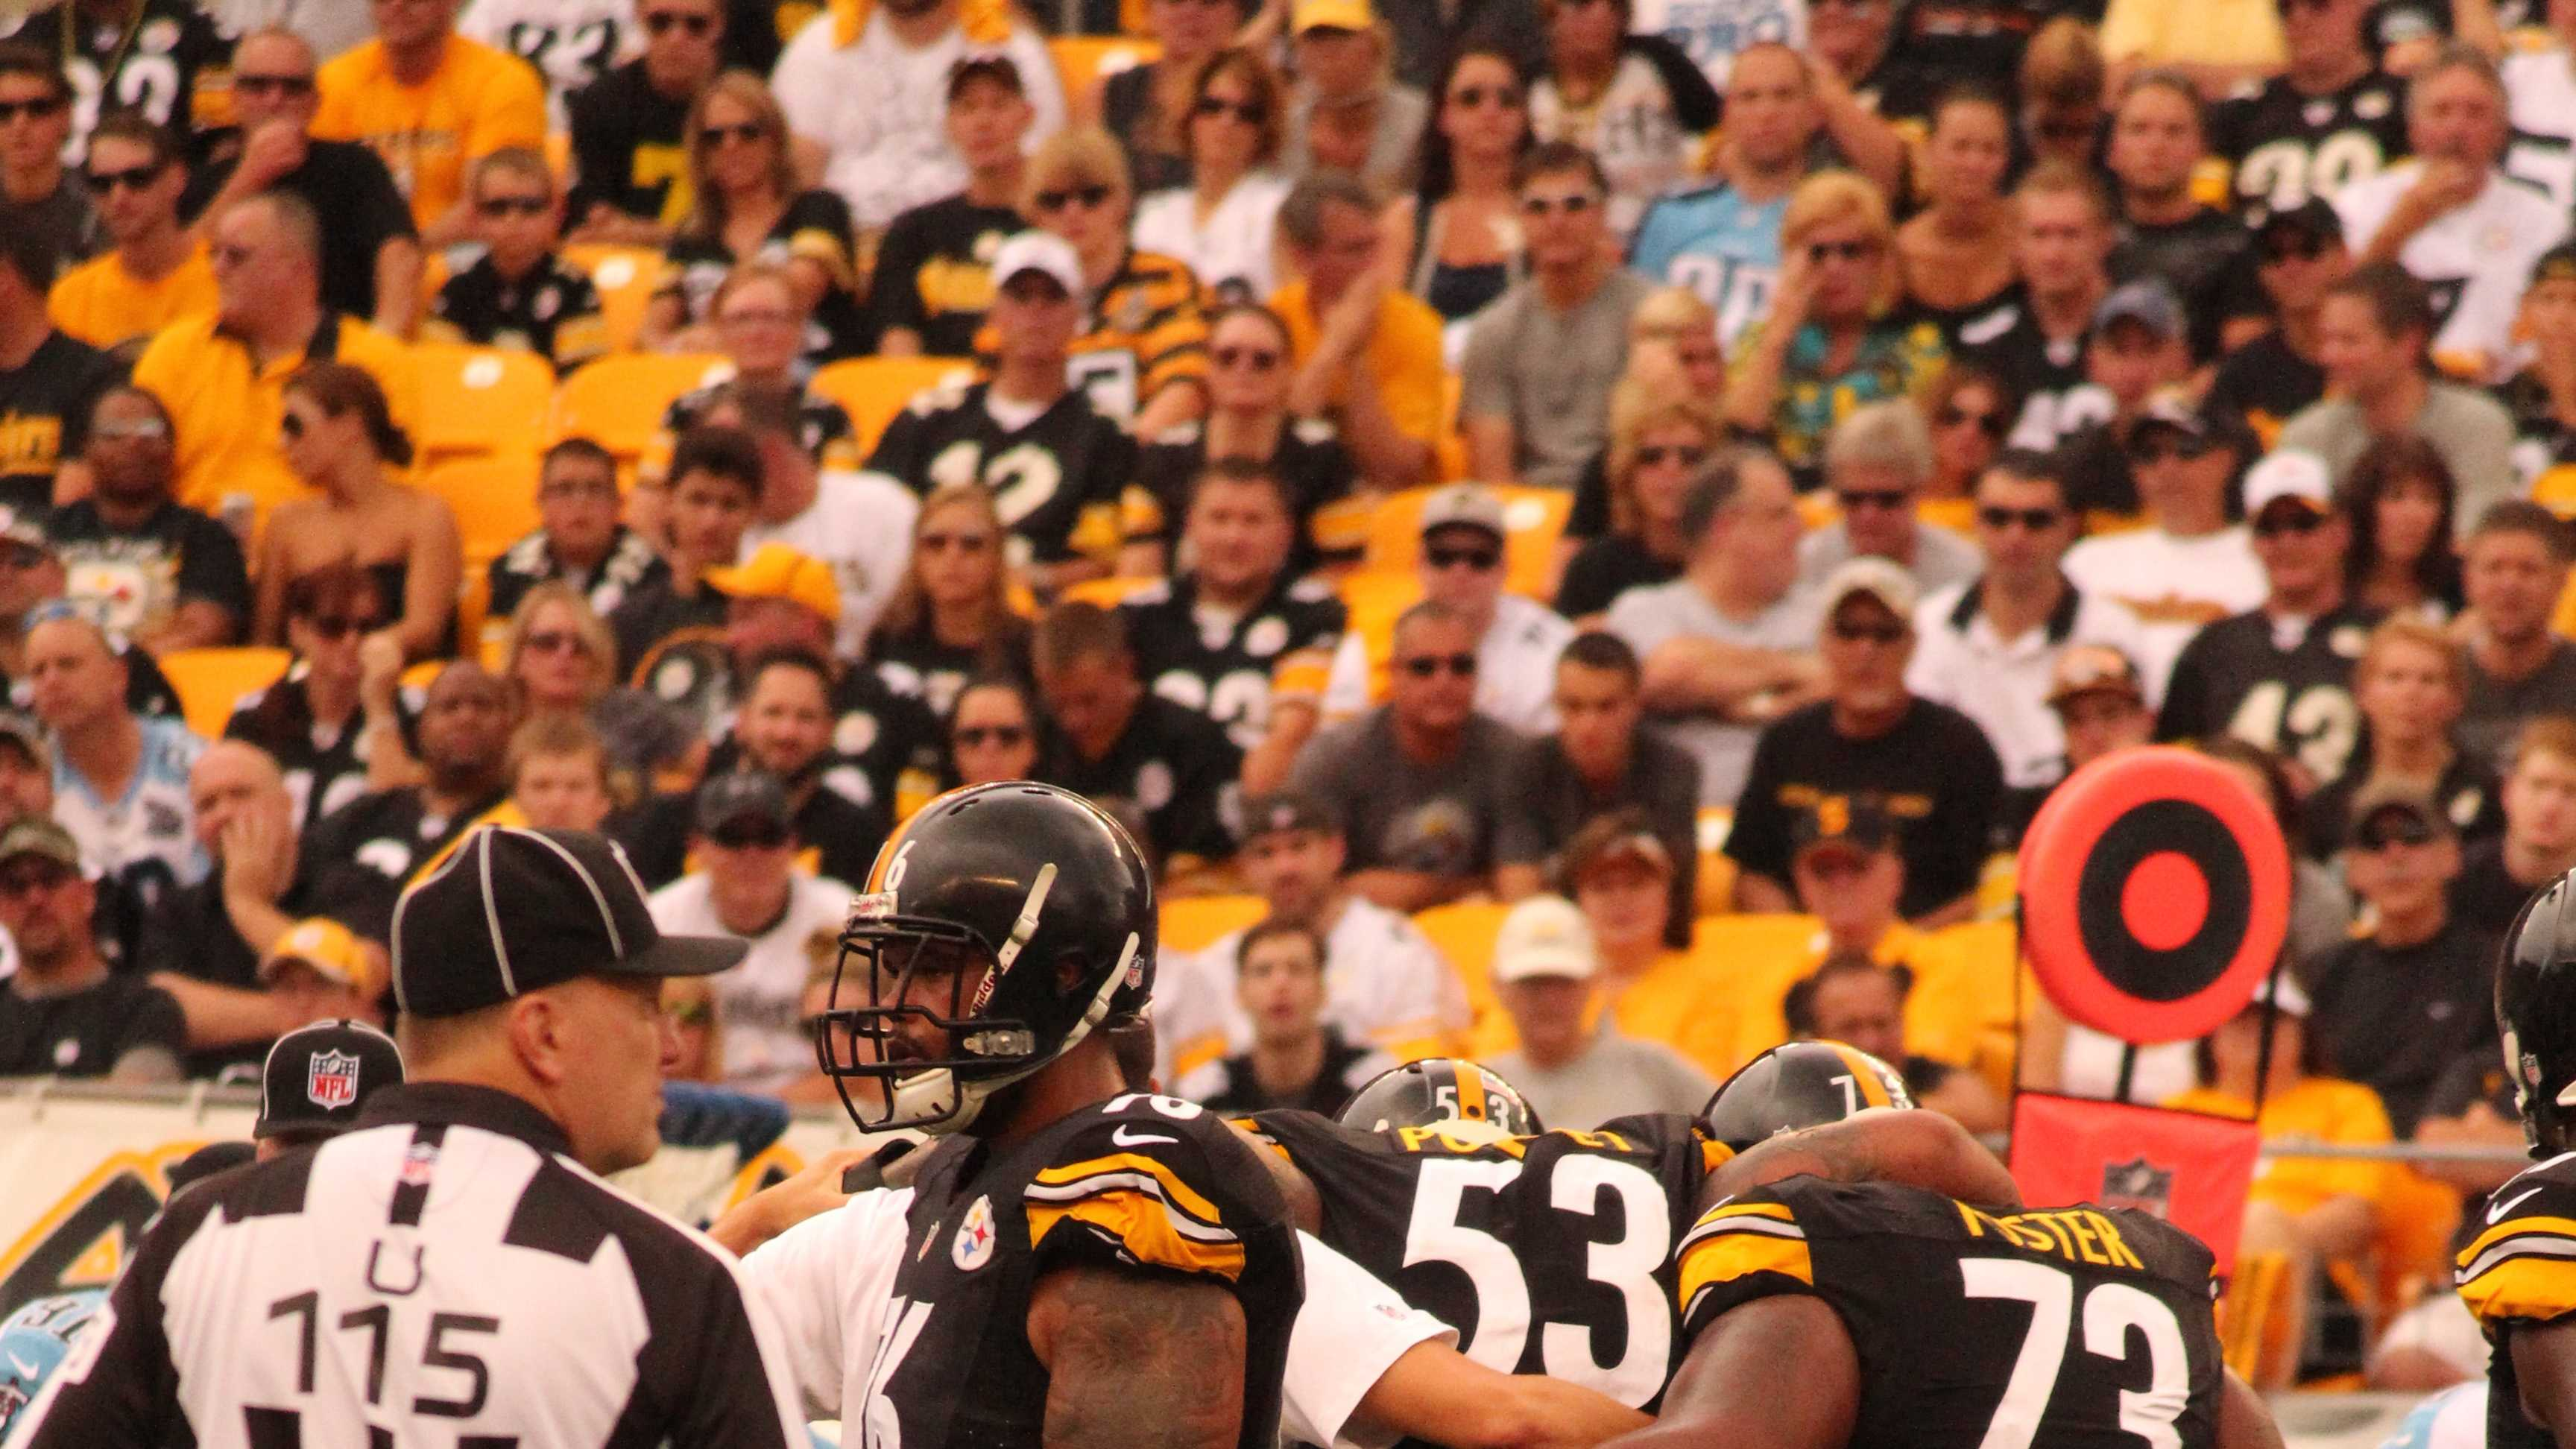 Maurkice Pouncey suffered a knee injury in the season opener against Tennessee.